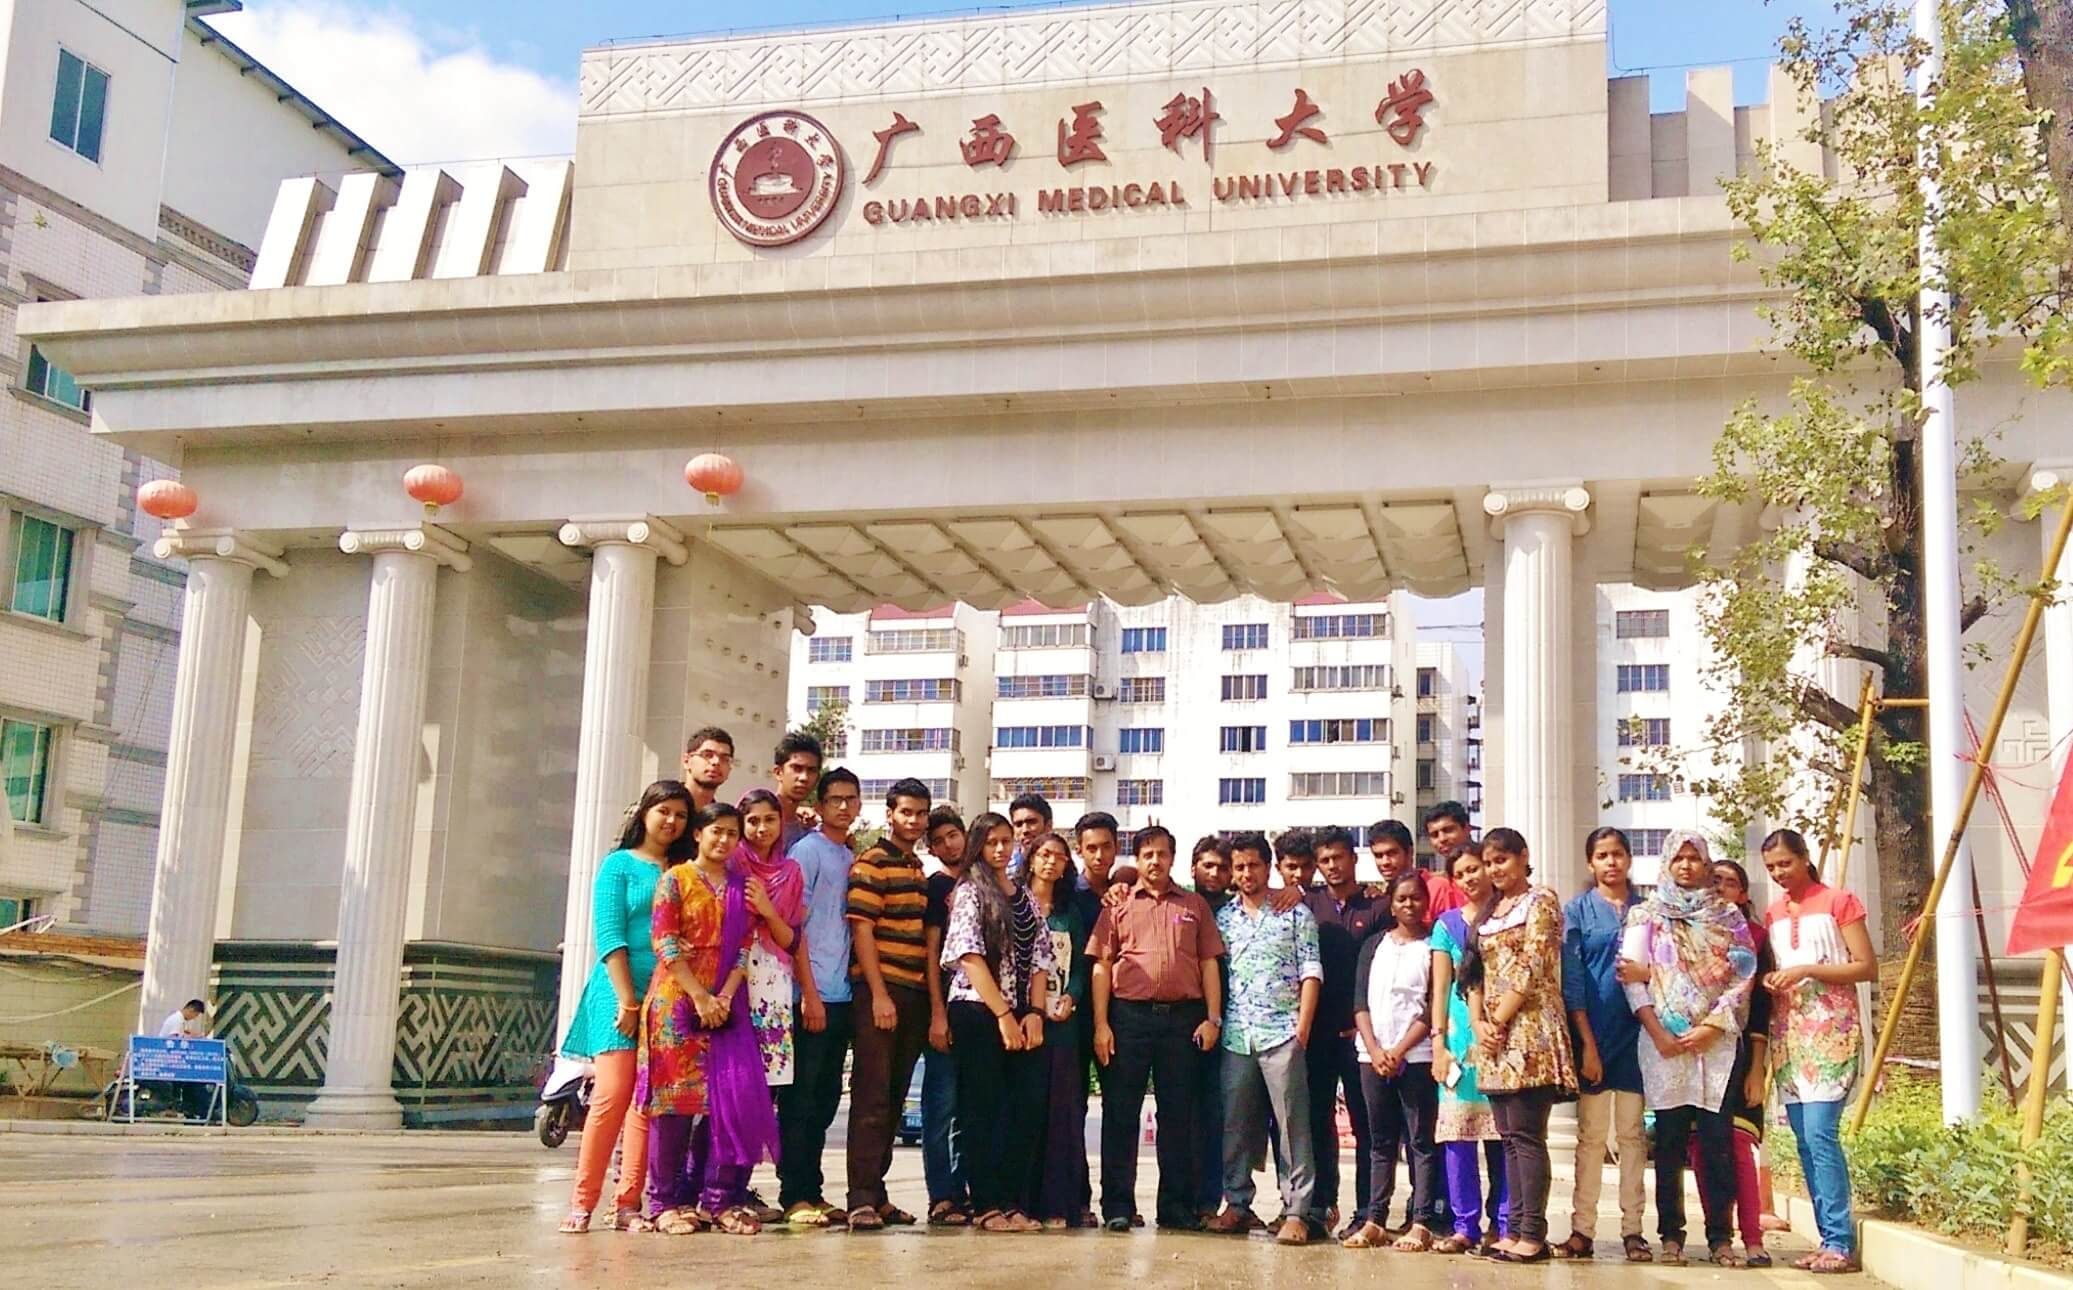 Pin by kristine on Study MBBS in China | Medical college, Medical